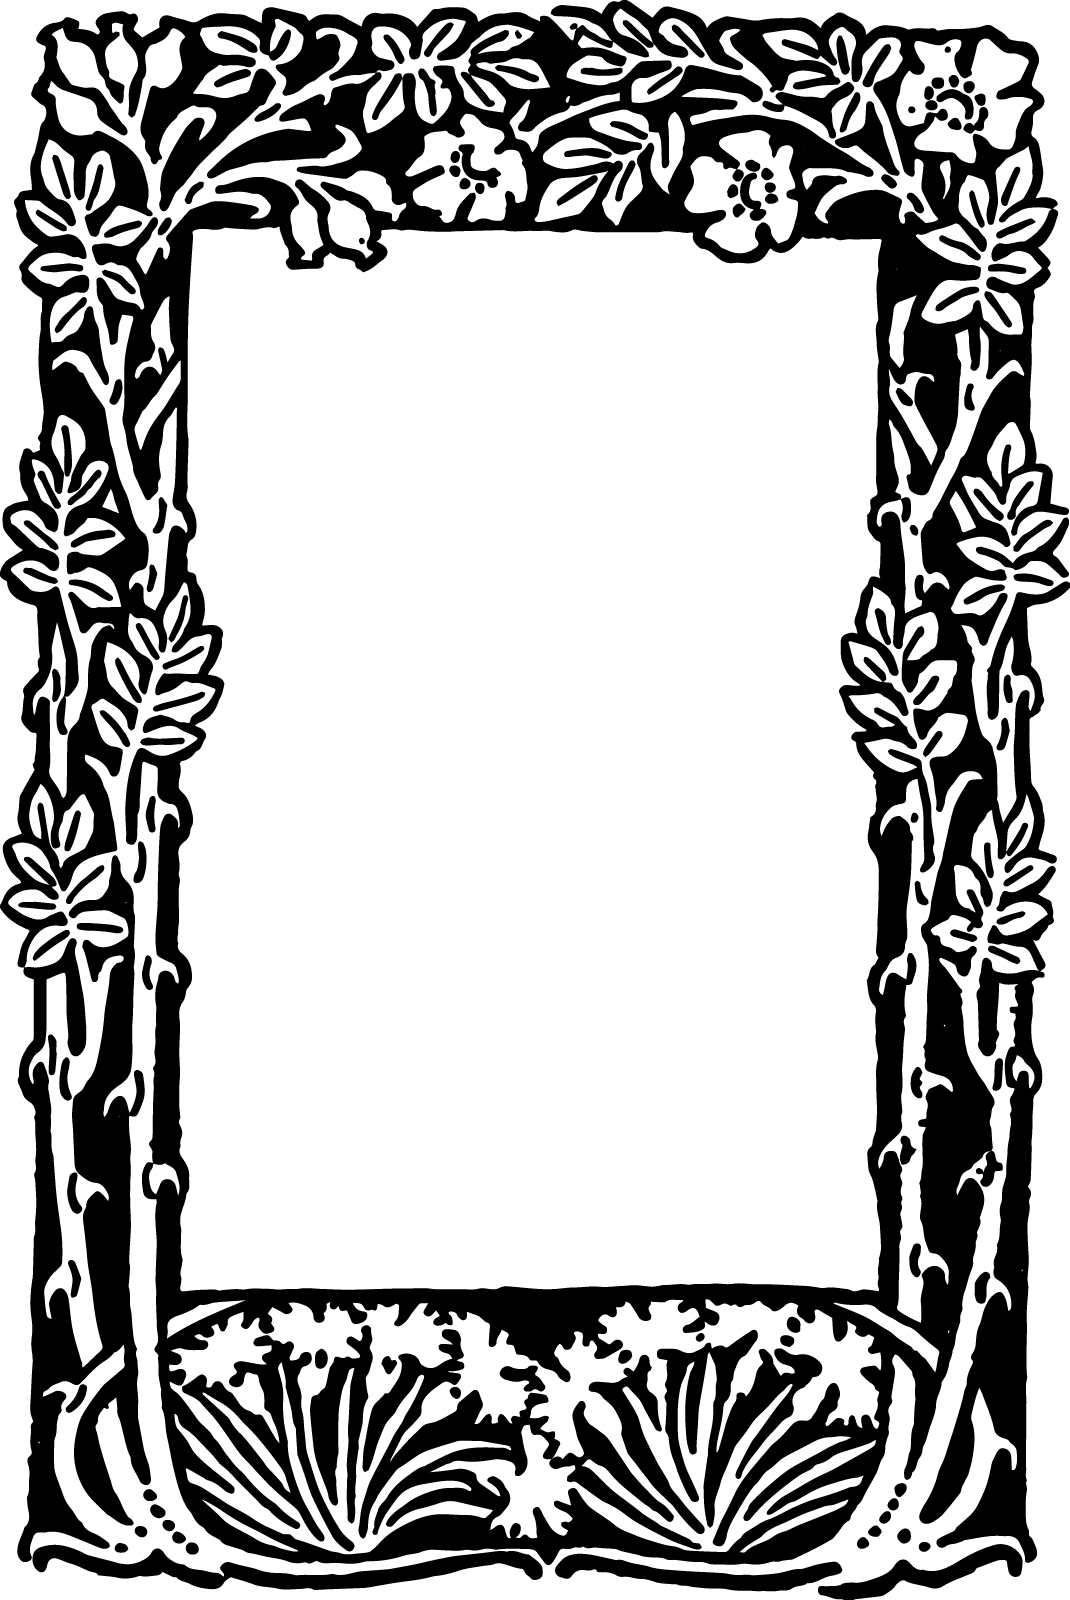 picture relating to Free Printable Borders and Frames Clip Art named Free of charge Letter Borders And Frames